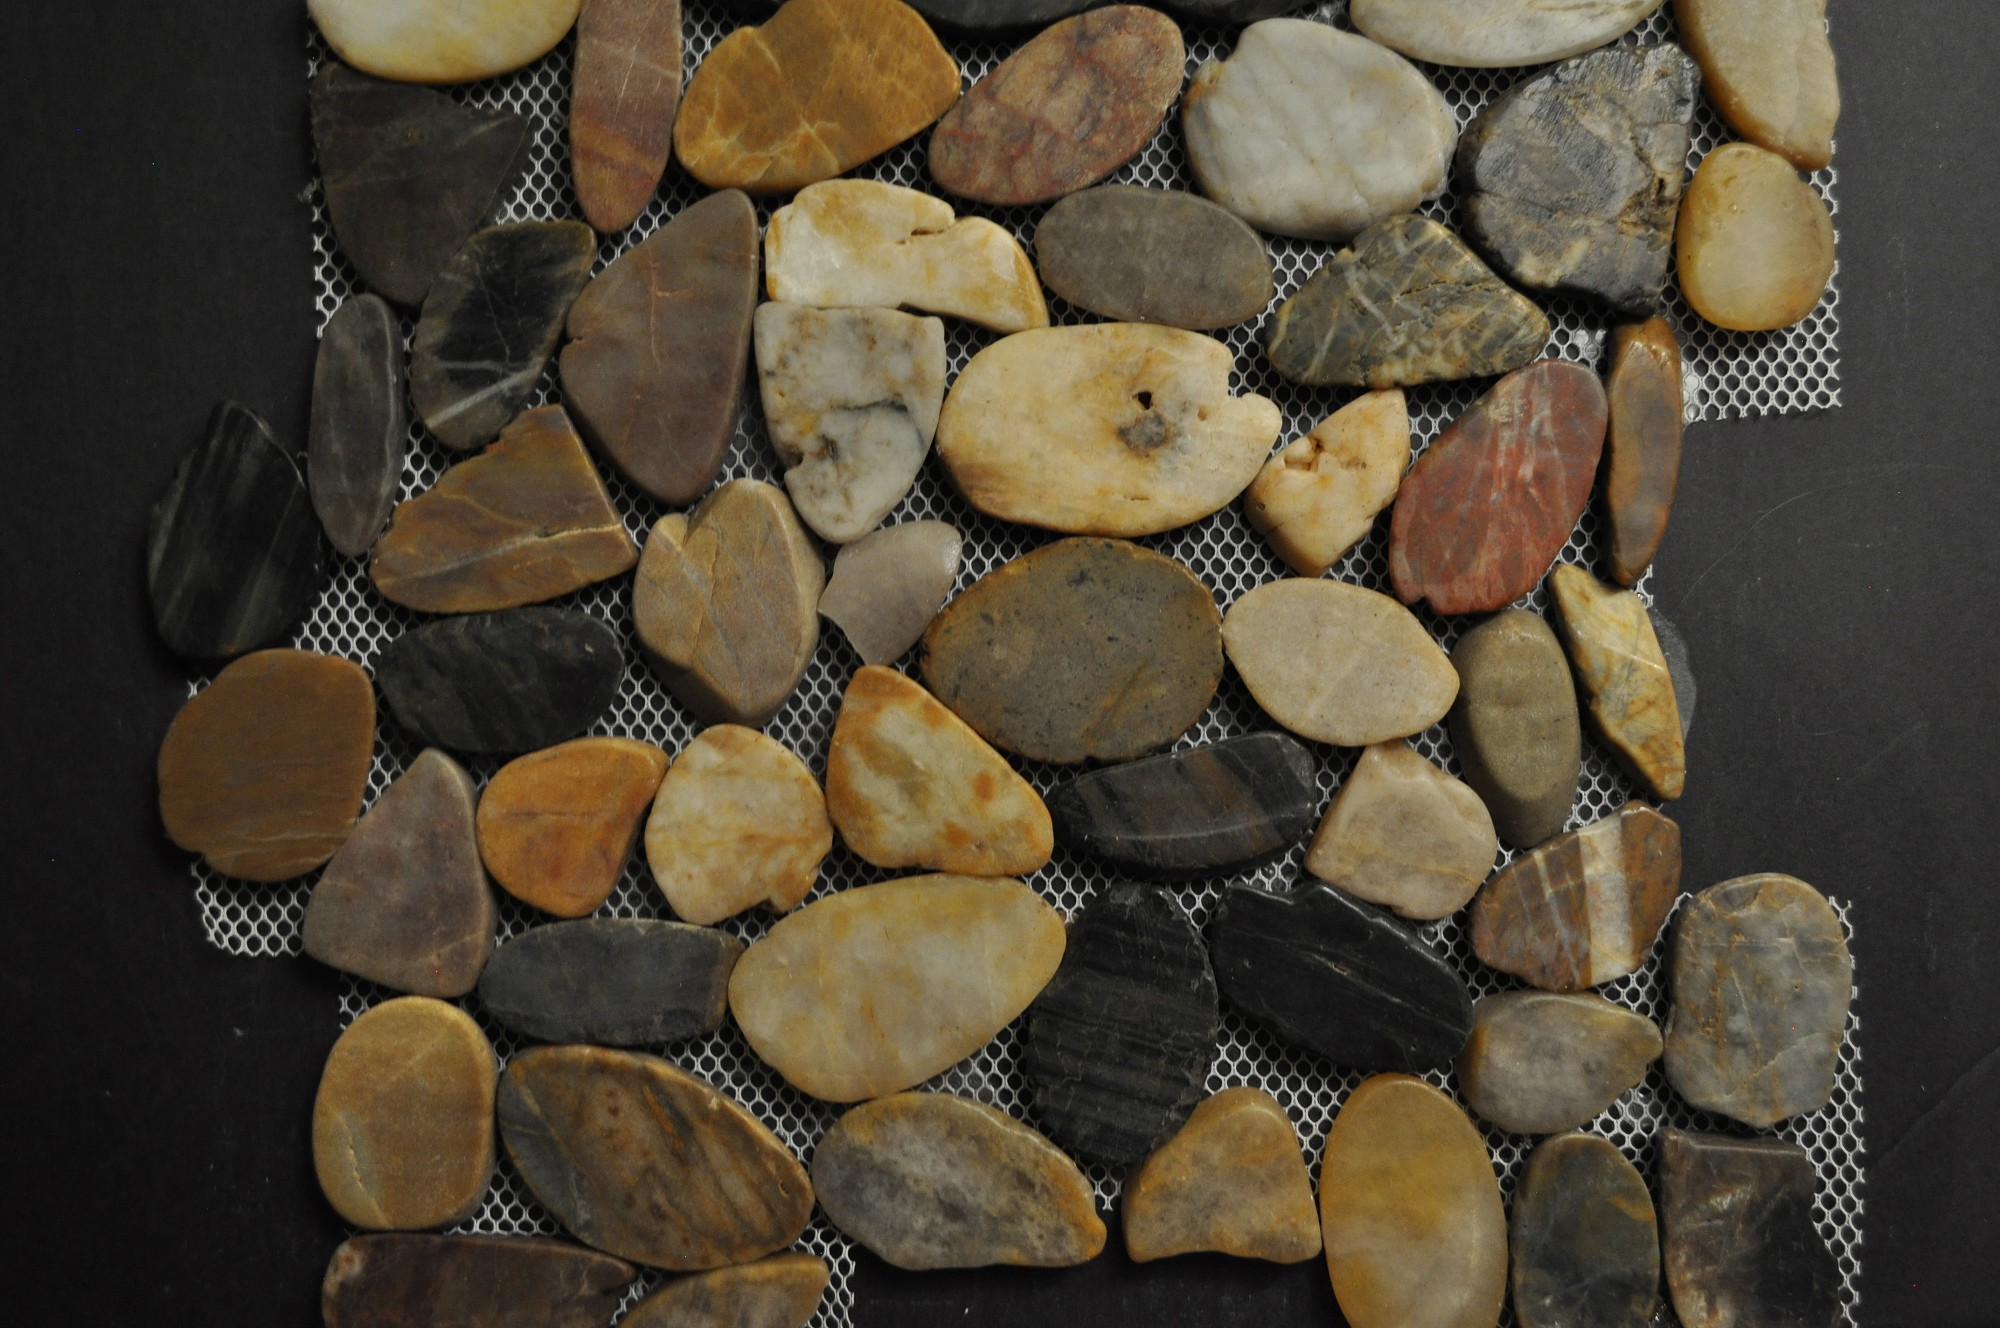 Tiger Eye Random Size And Color Pebbles Glass Tile Home